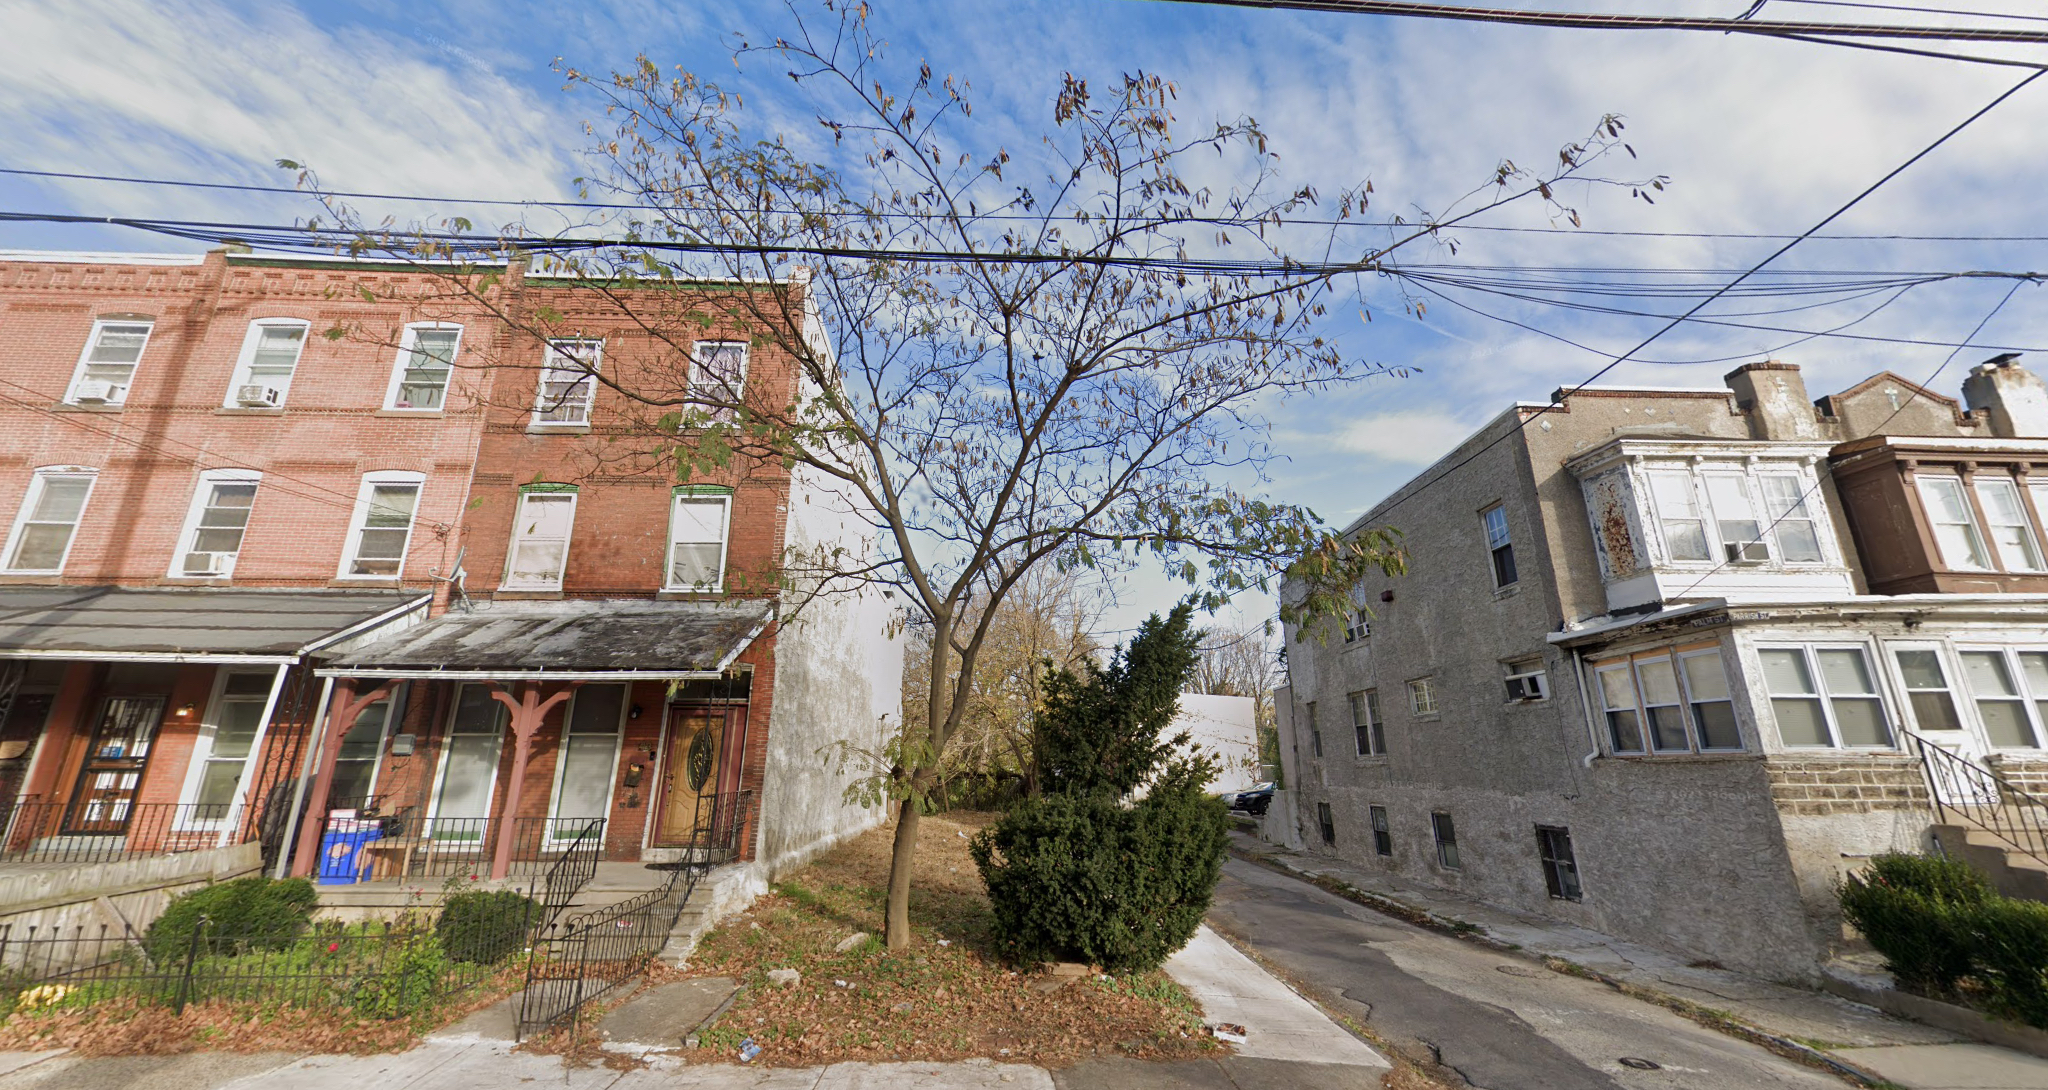 Current view of 4111 Parrish Street. Credit: Google.